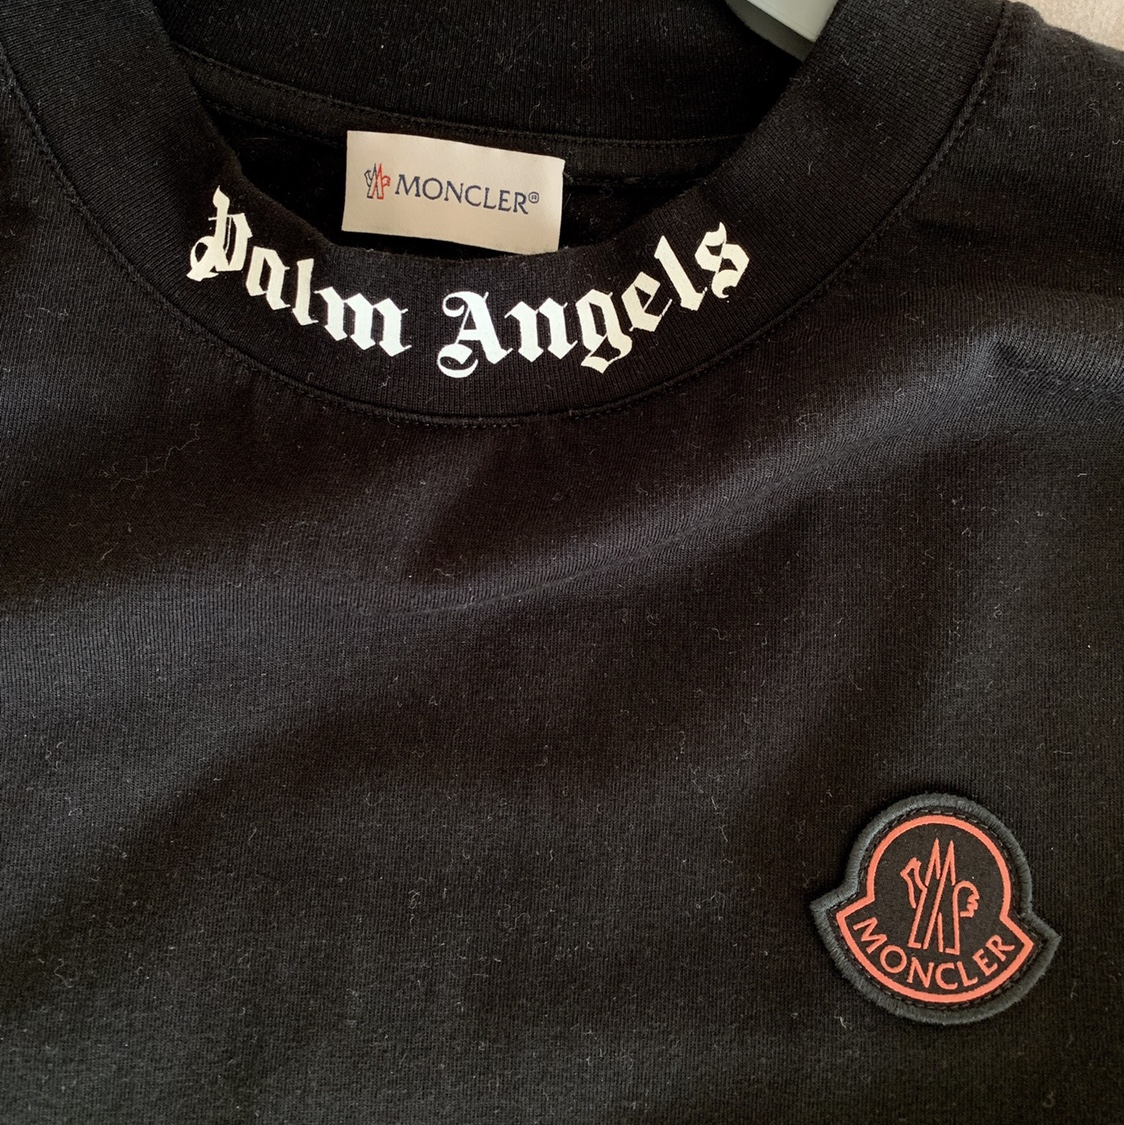 palm angels x moncler tee